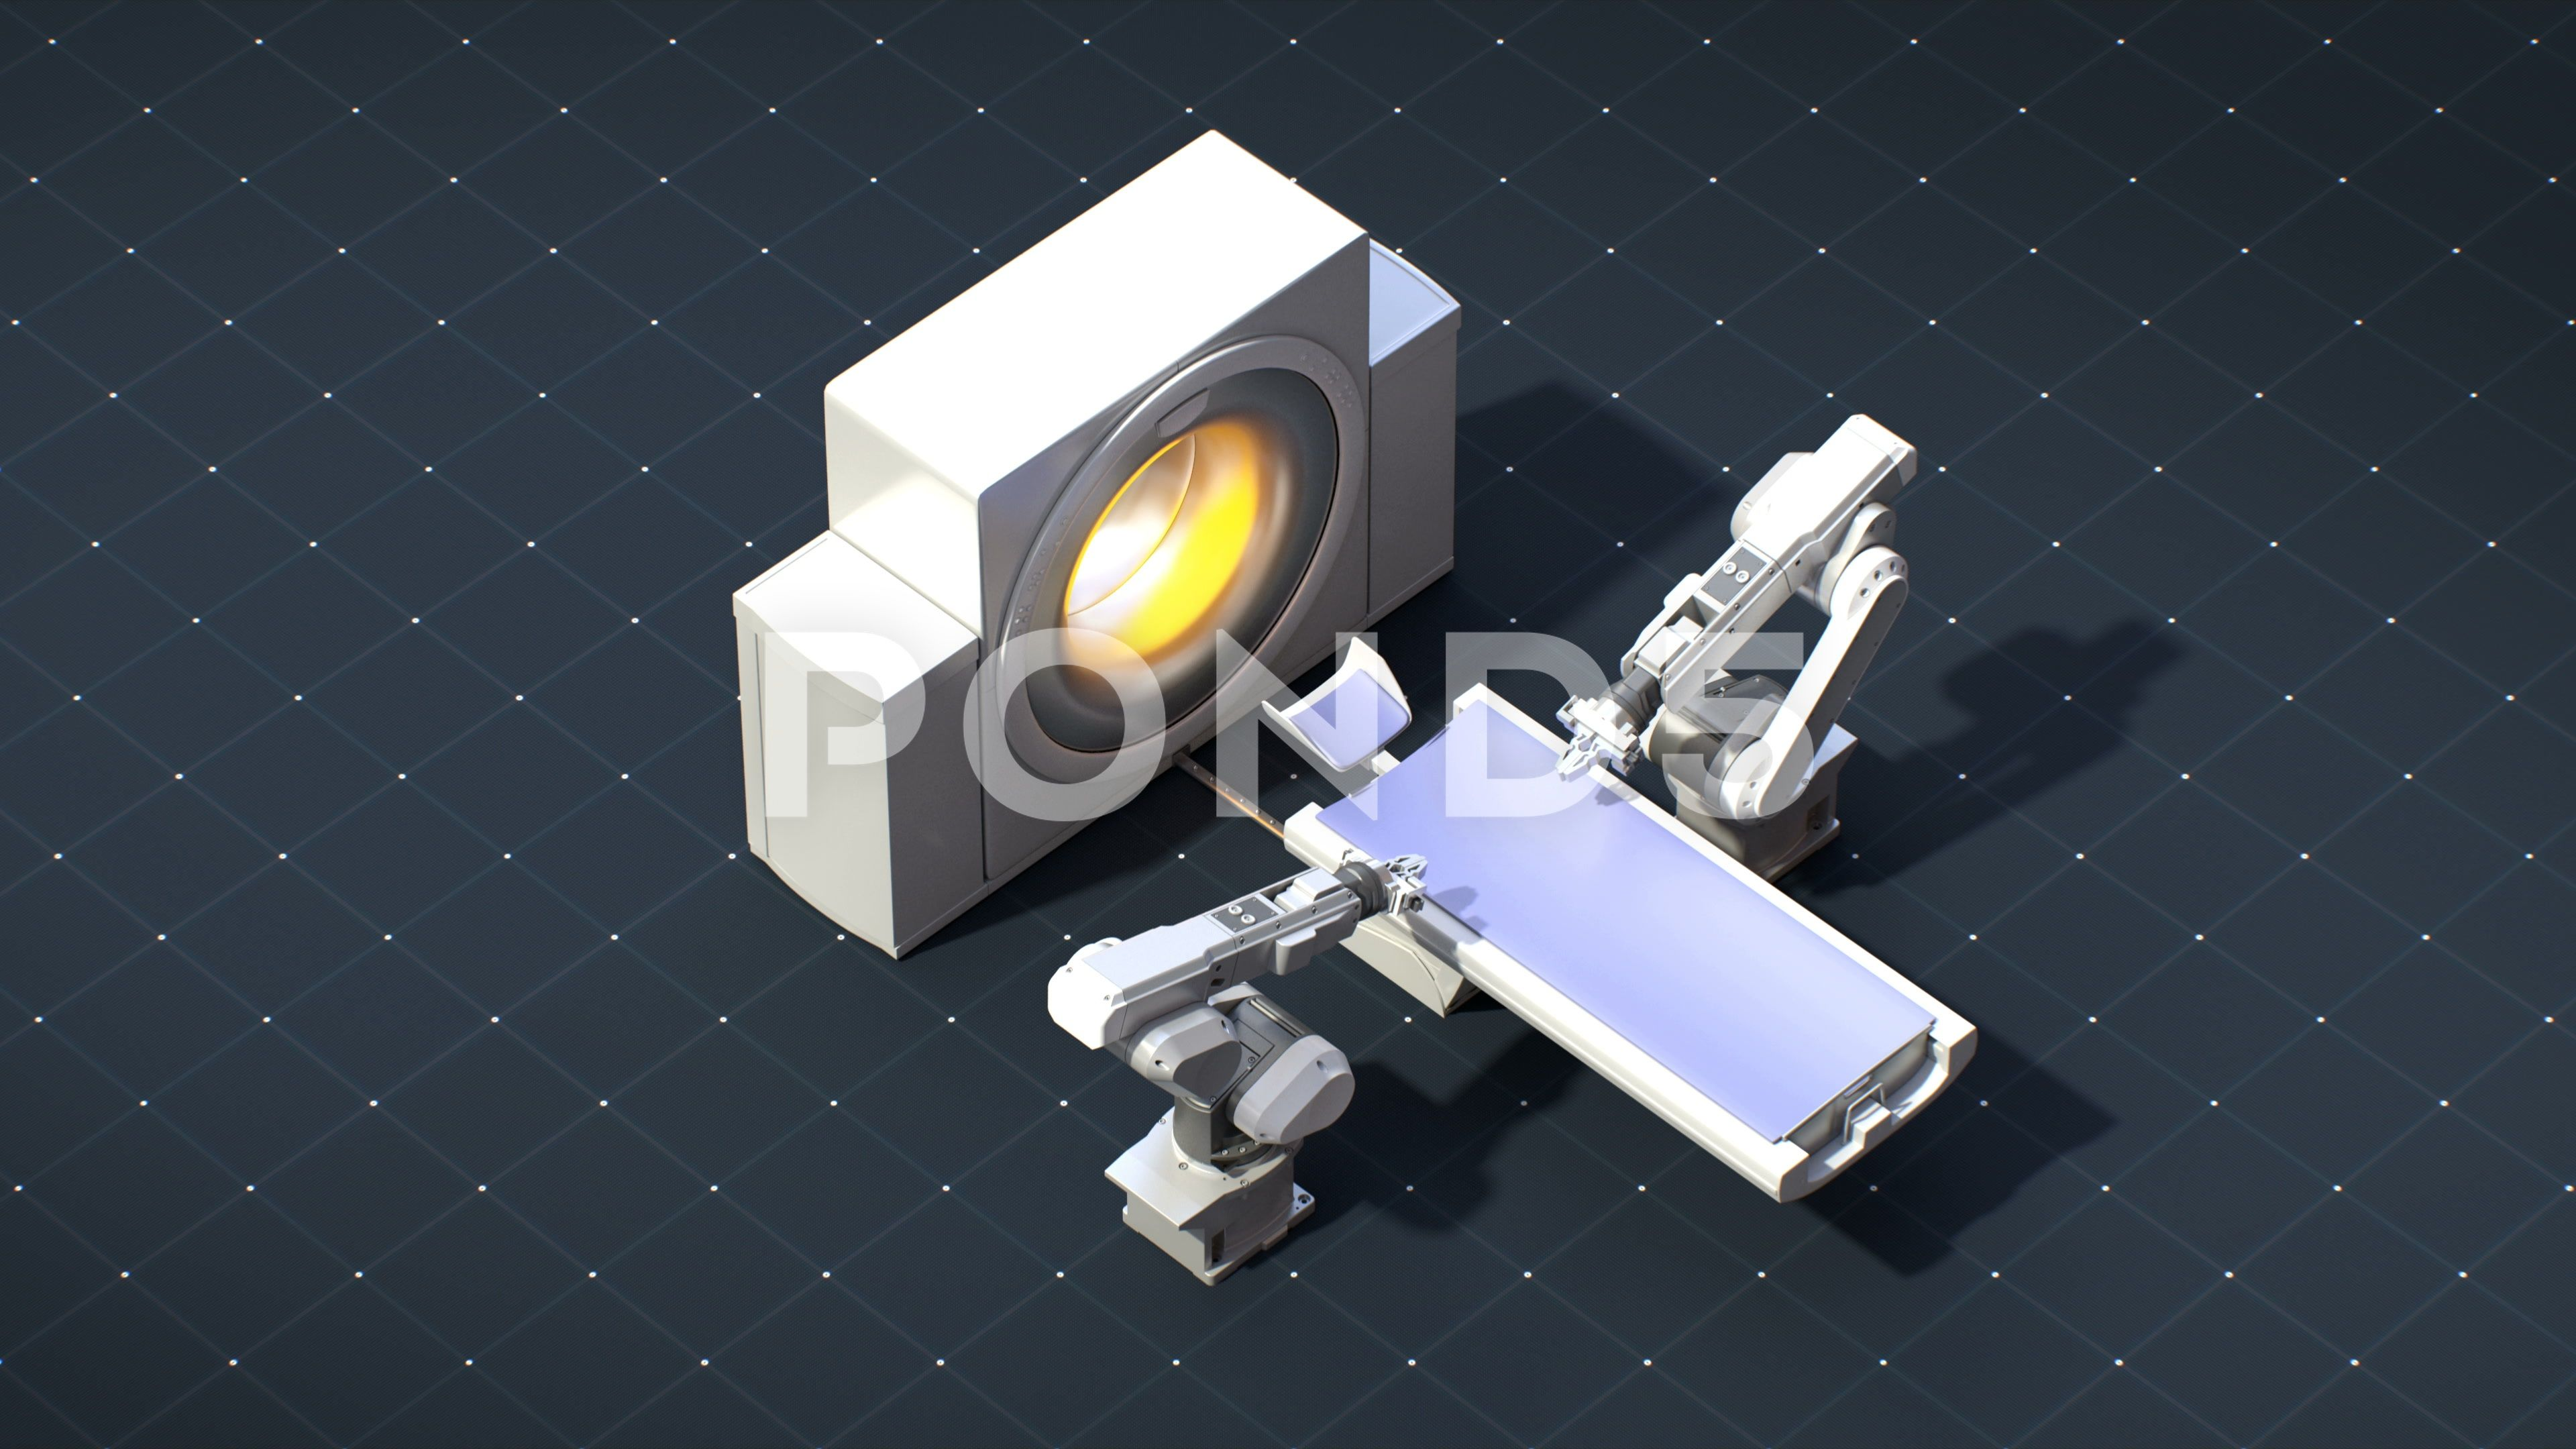 Robot surgery with MRI scanner, future medical technology